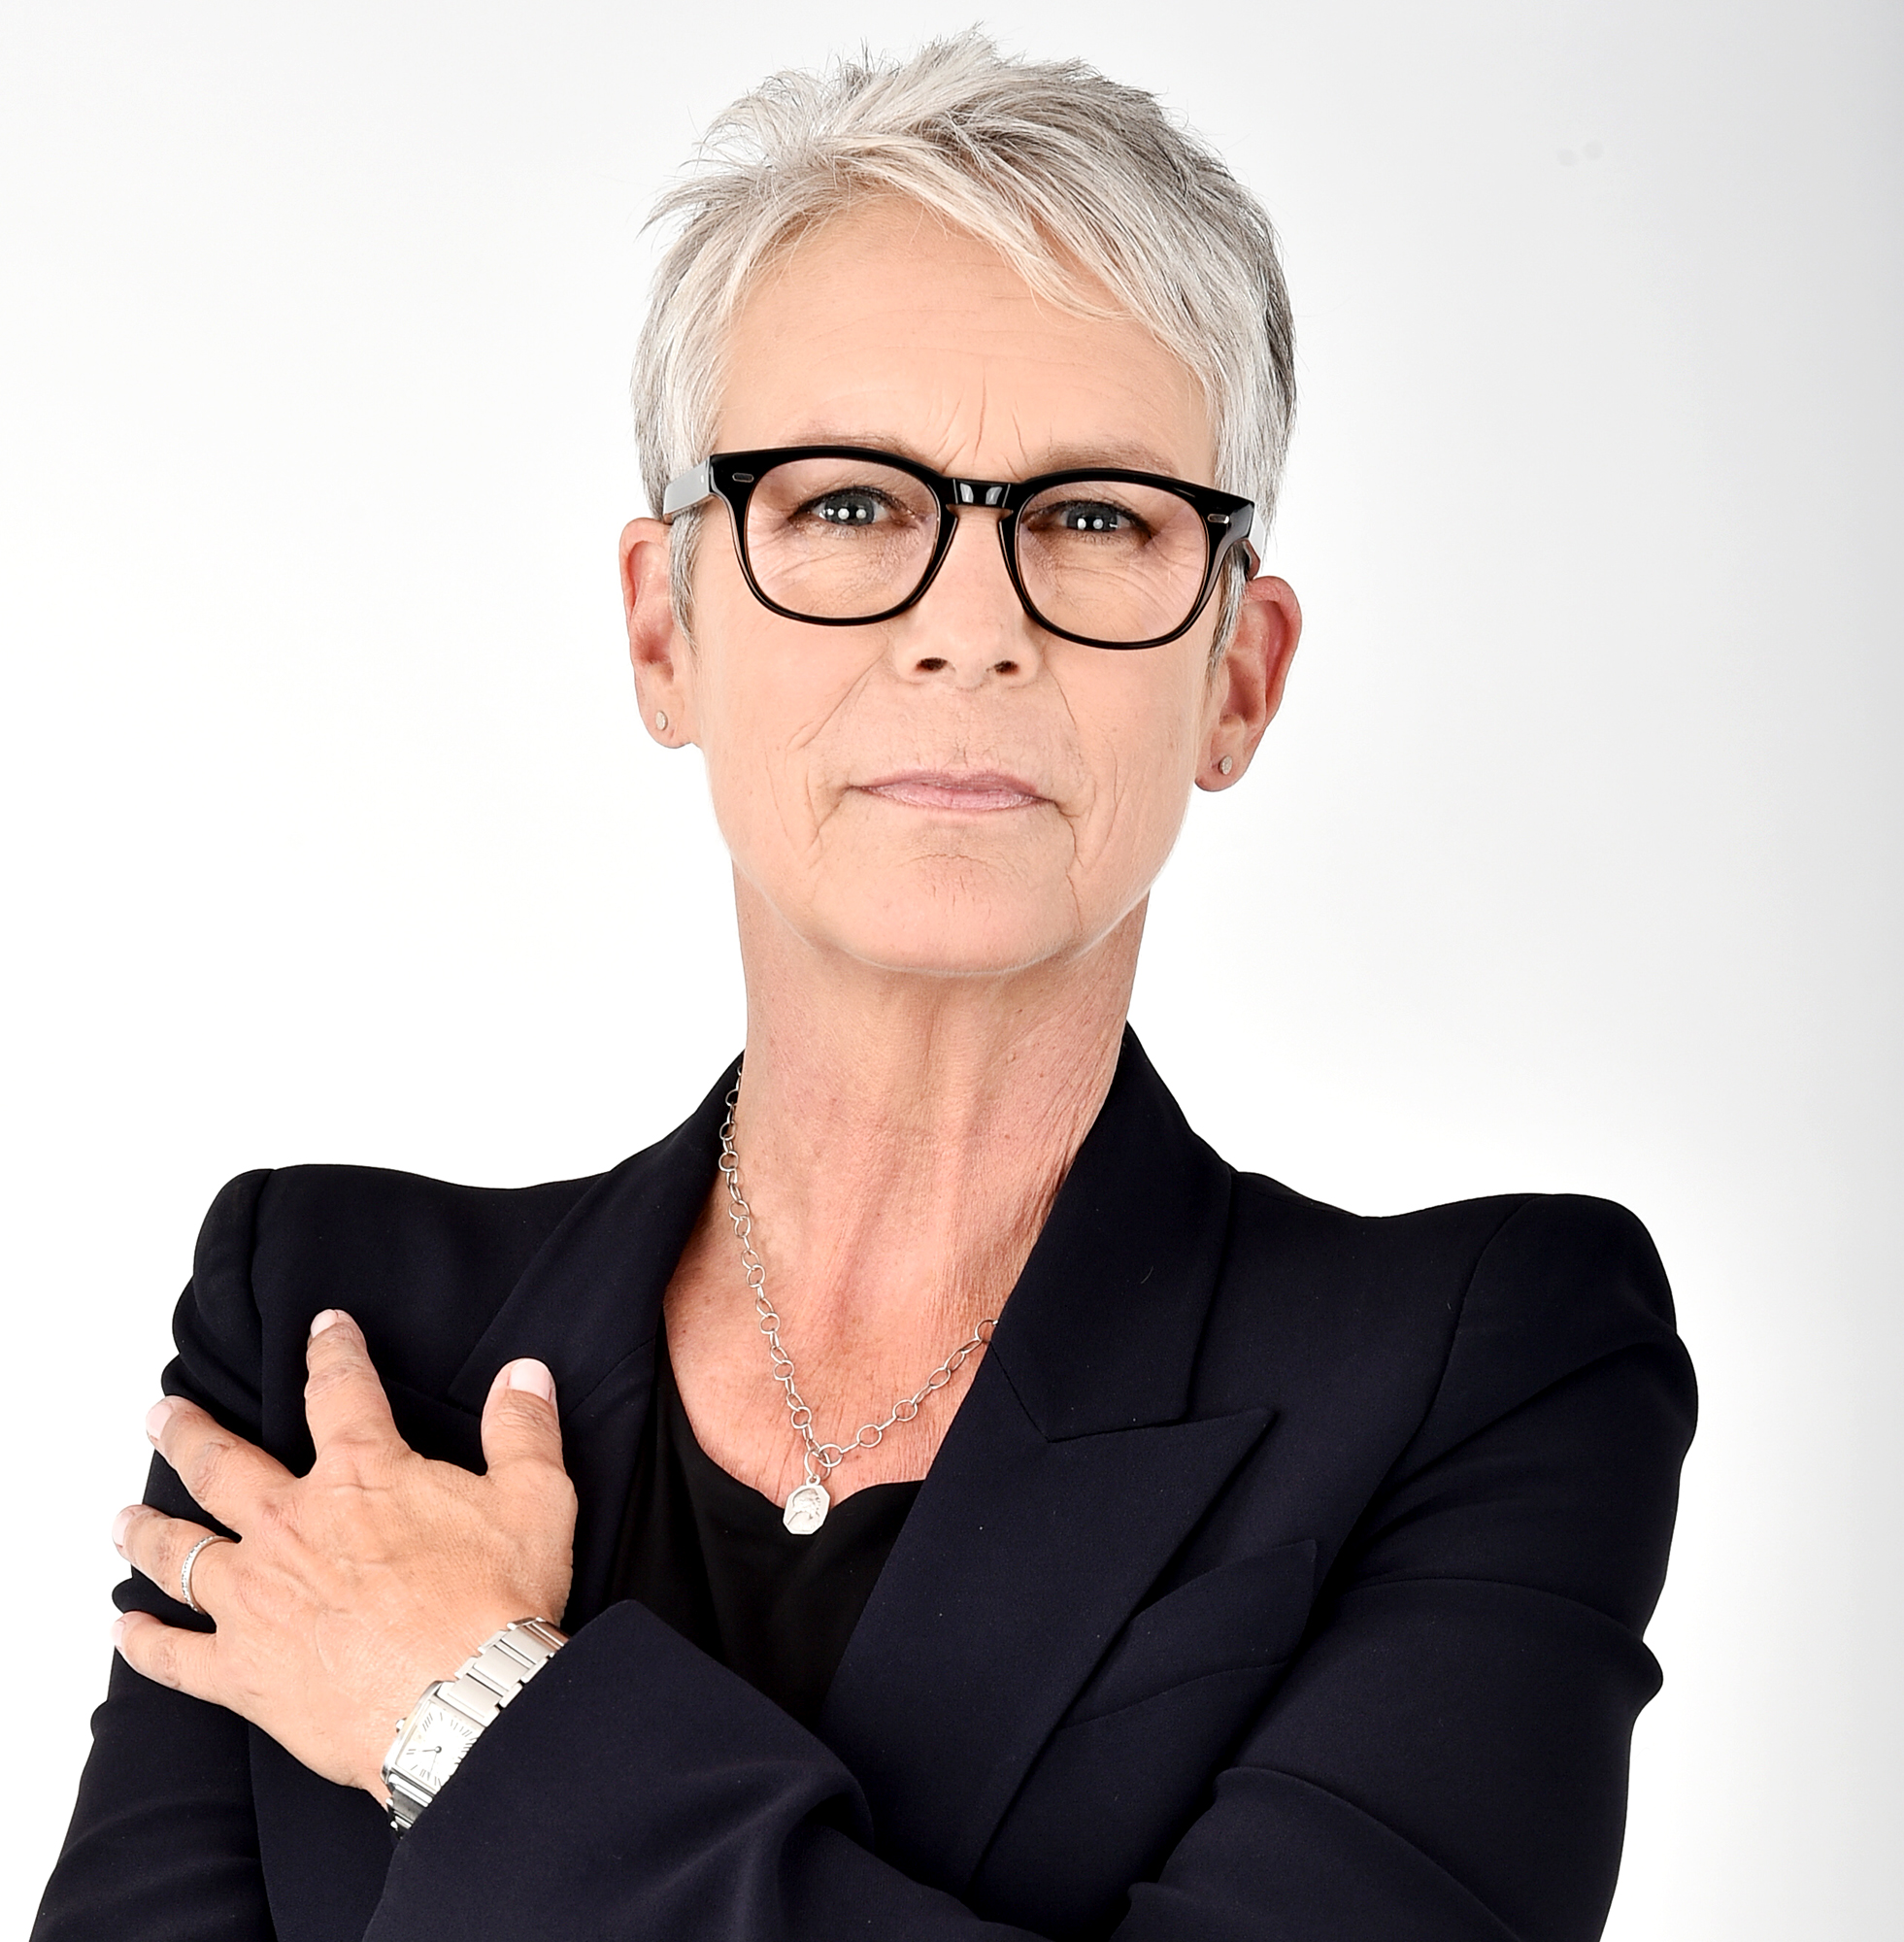 Jamie Lee Curtis Details Her Past Addiction to Vicodin After Celebrating 20 Years of Sobriety